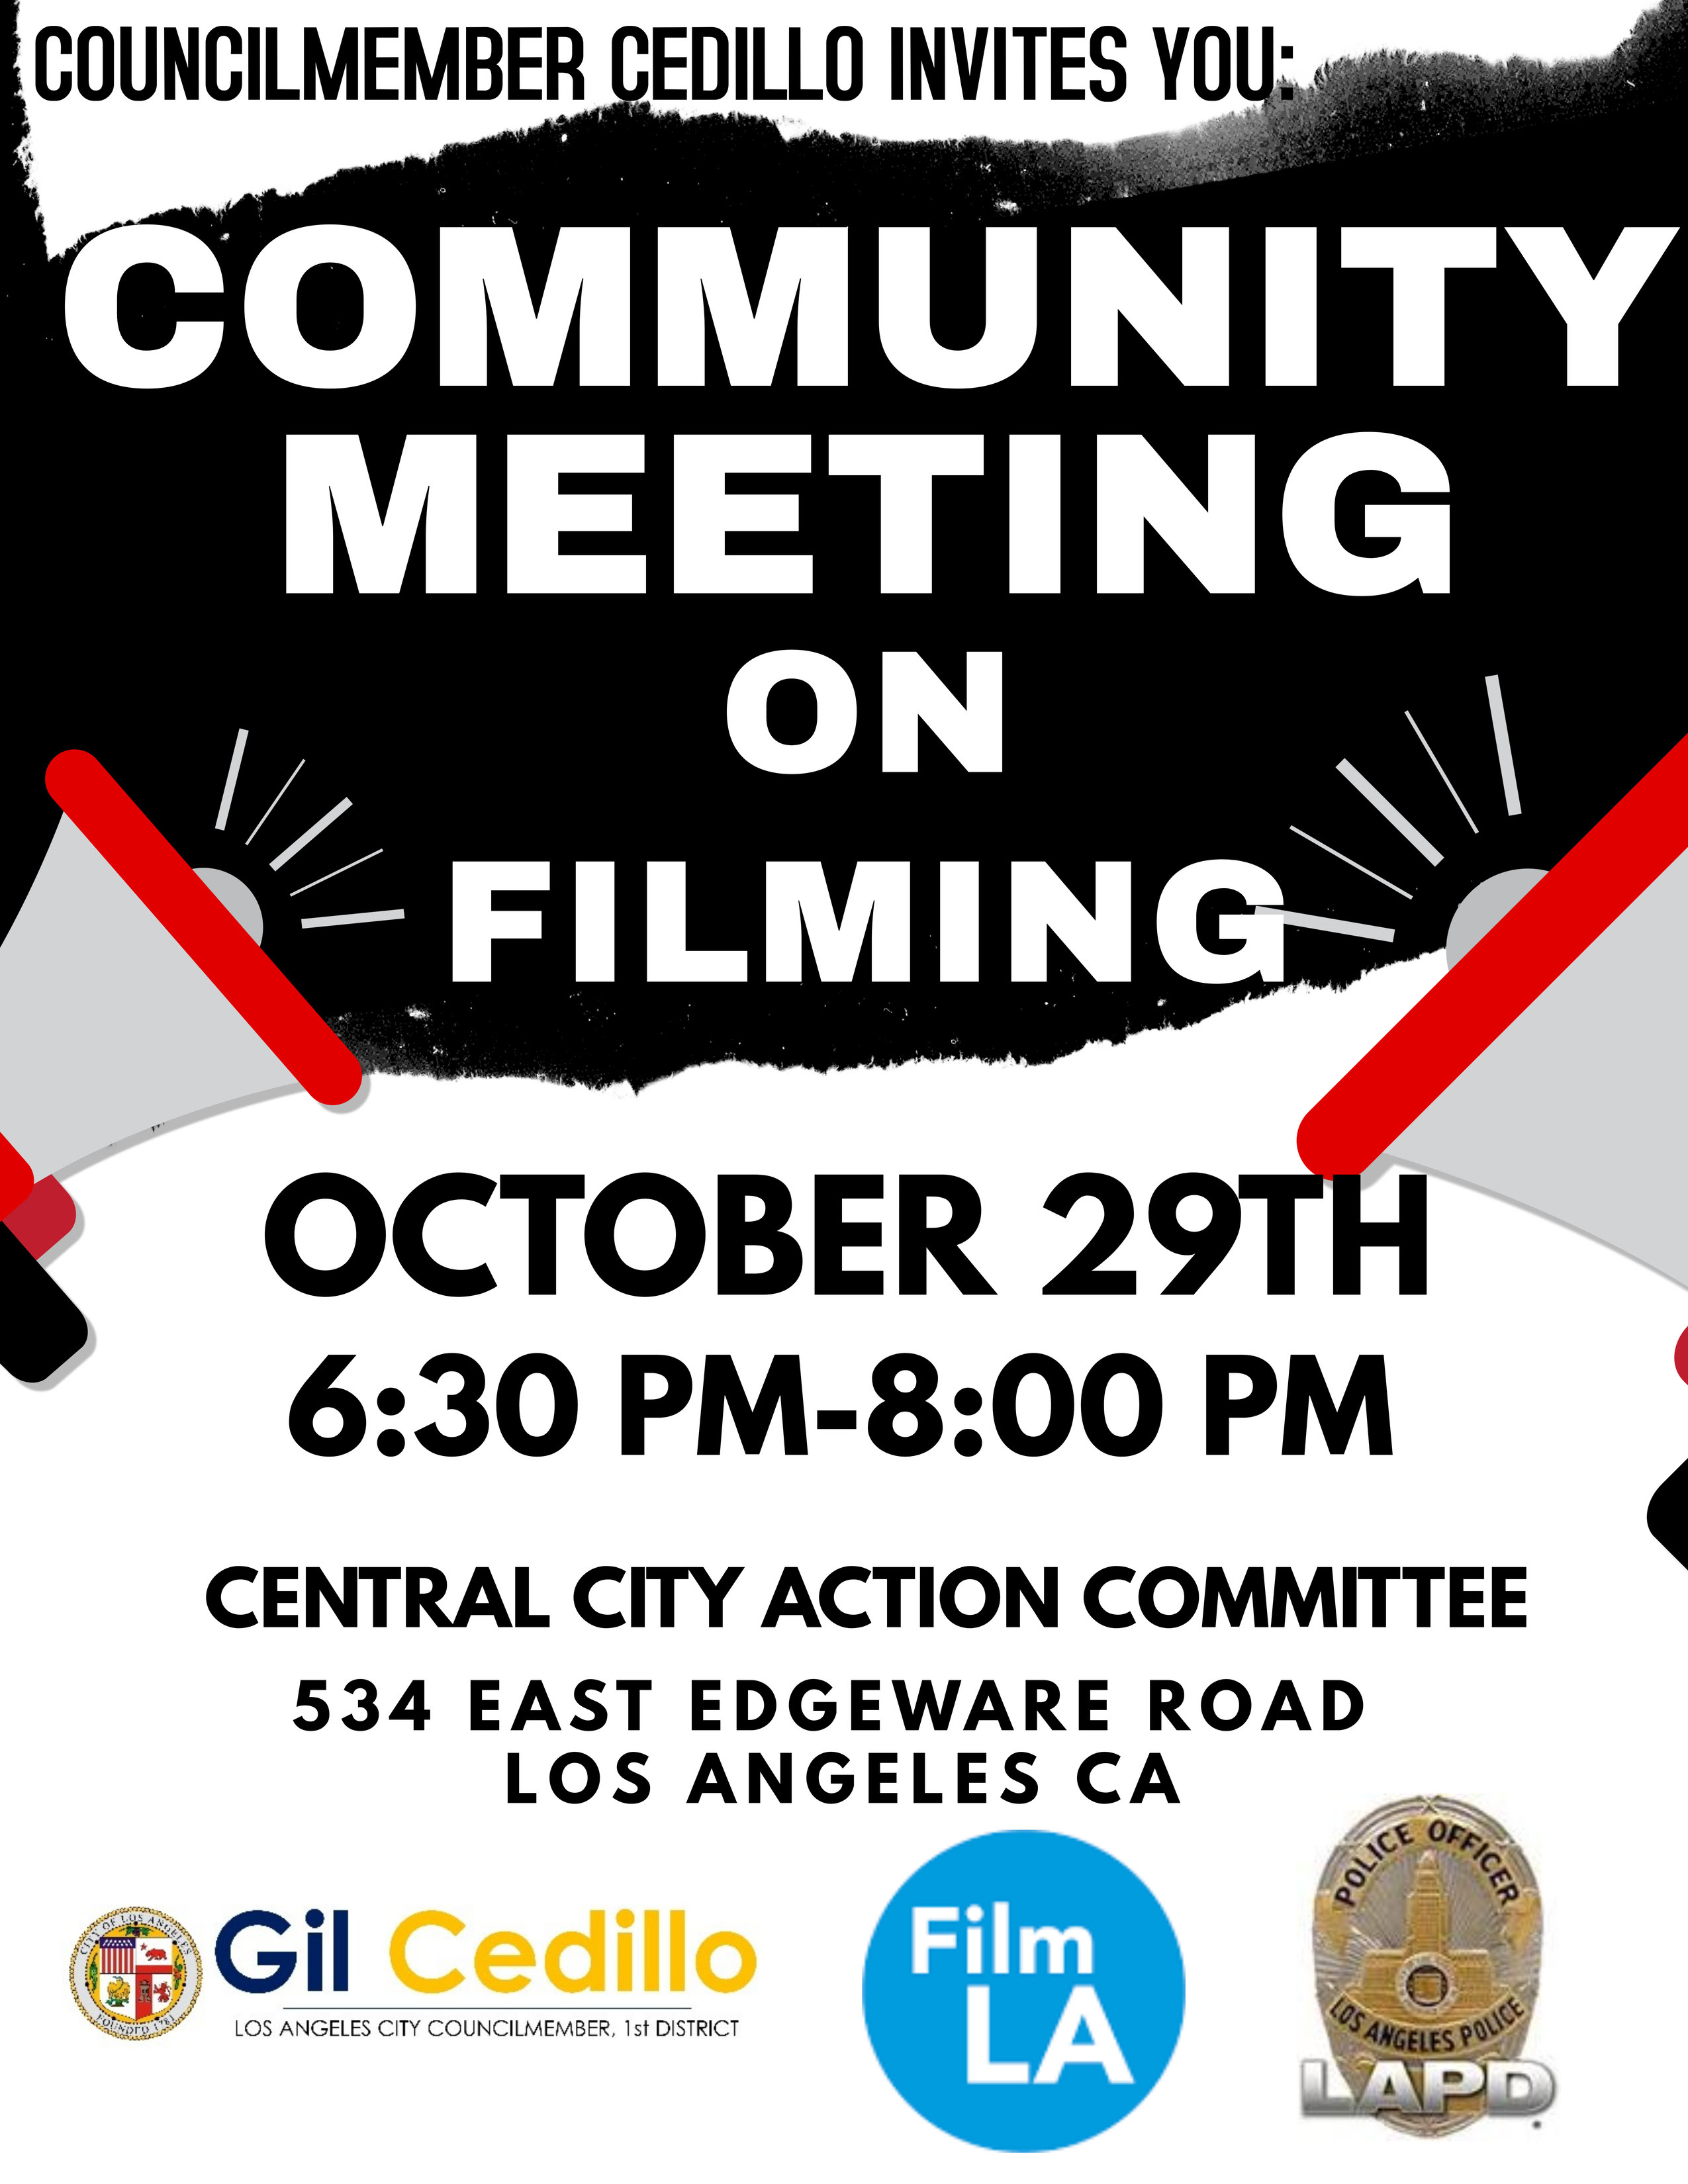 Film Community Meeting Flyer English 10-29-19